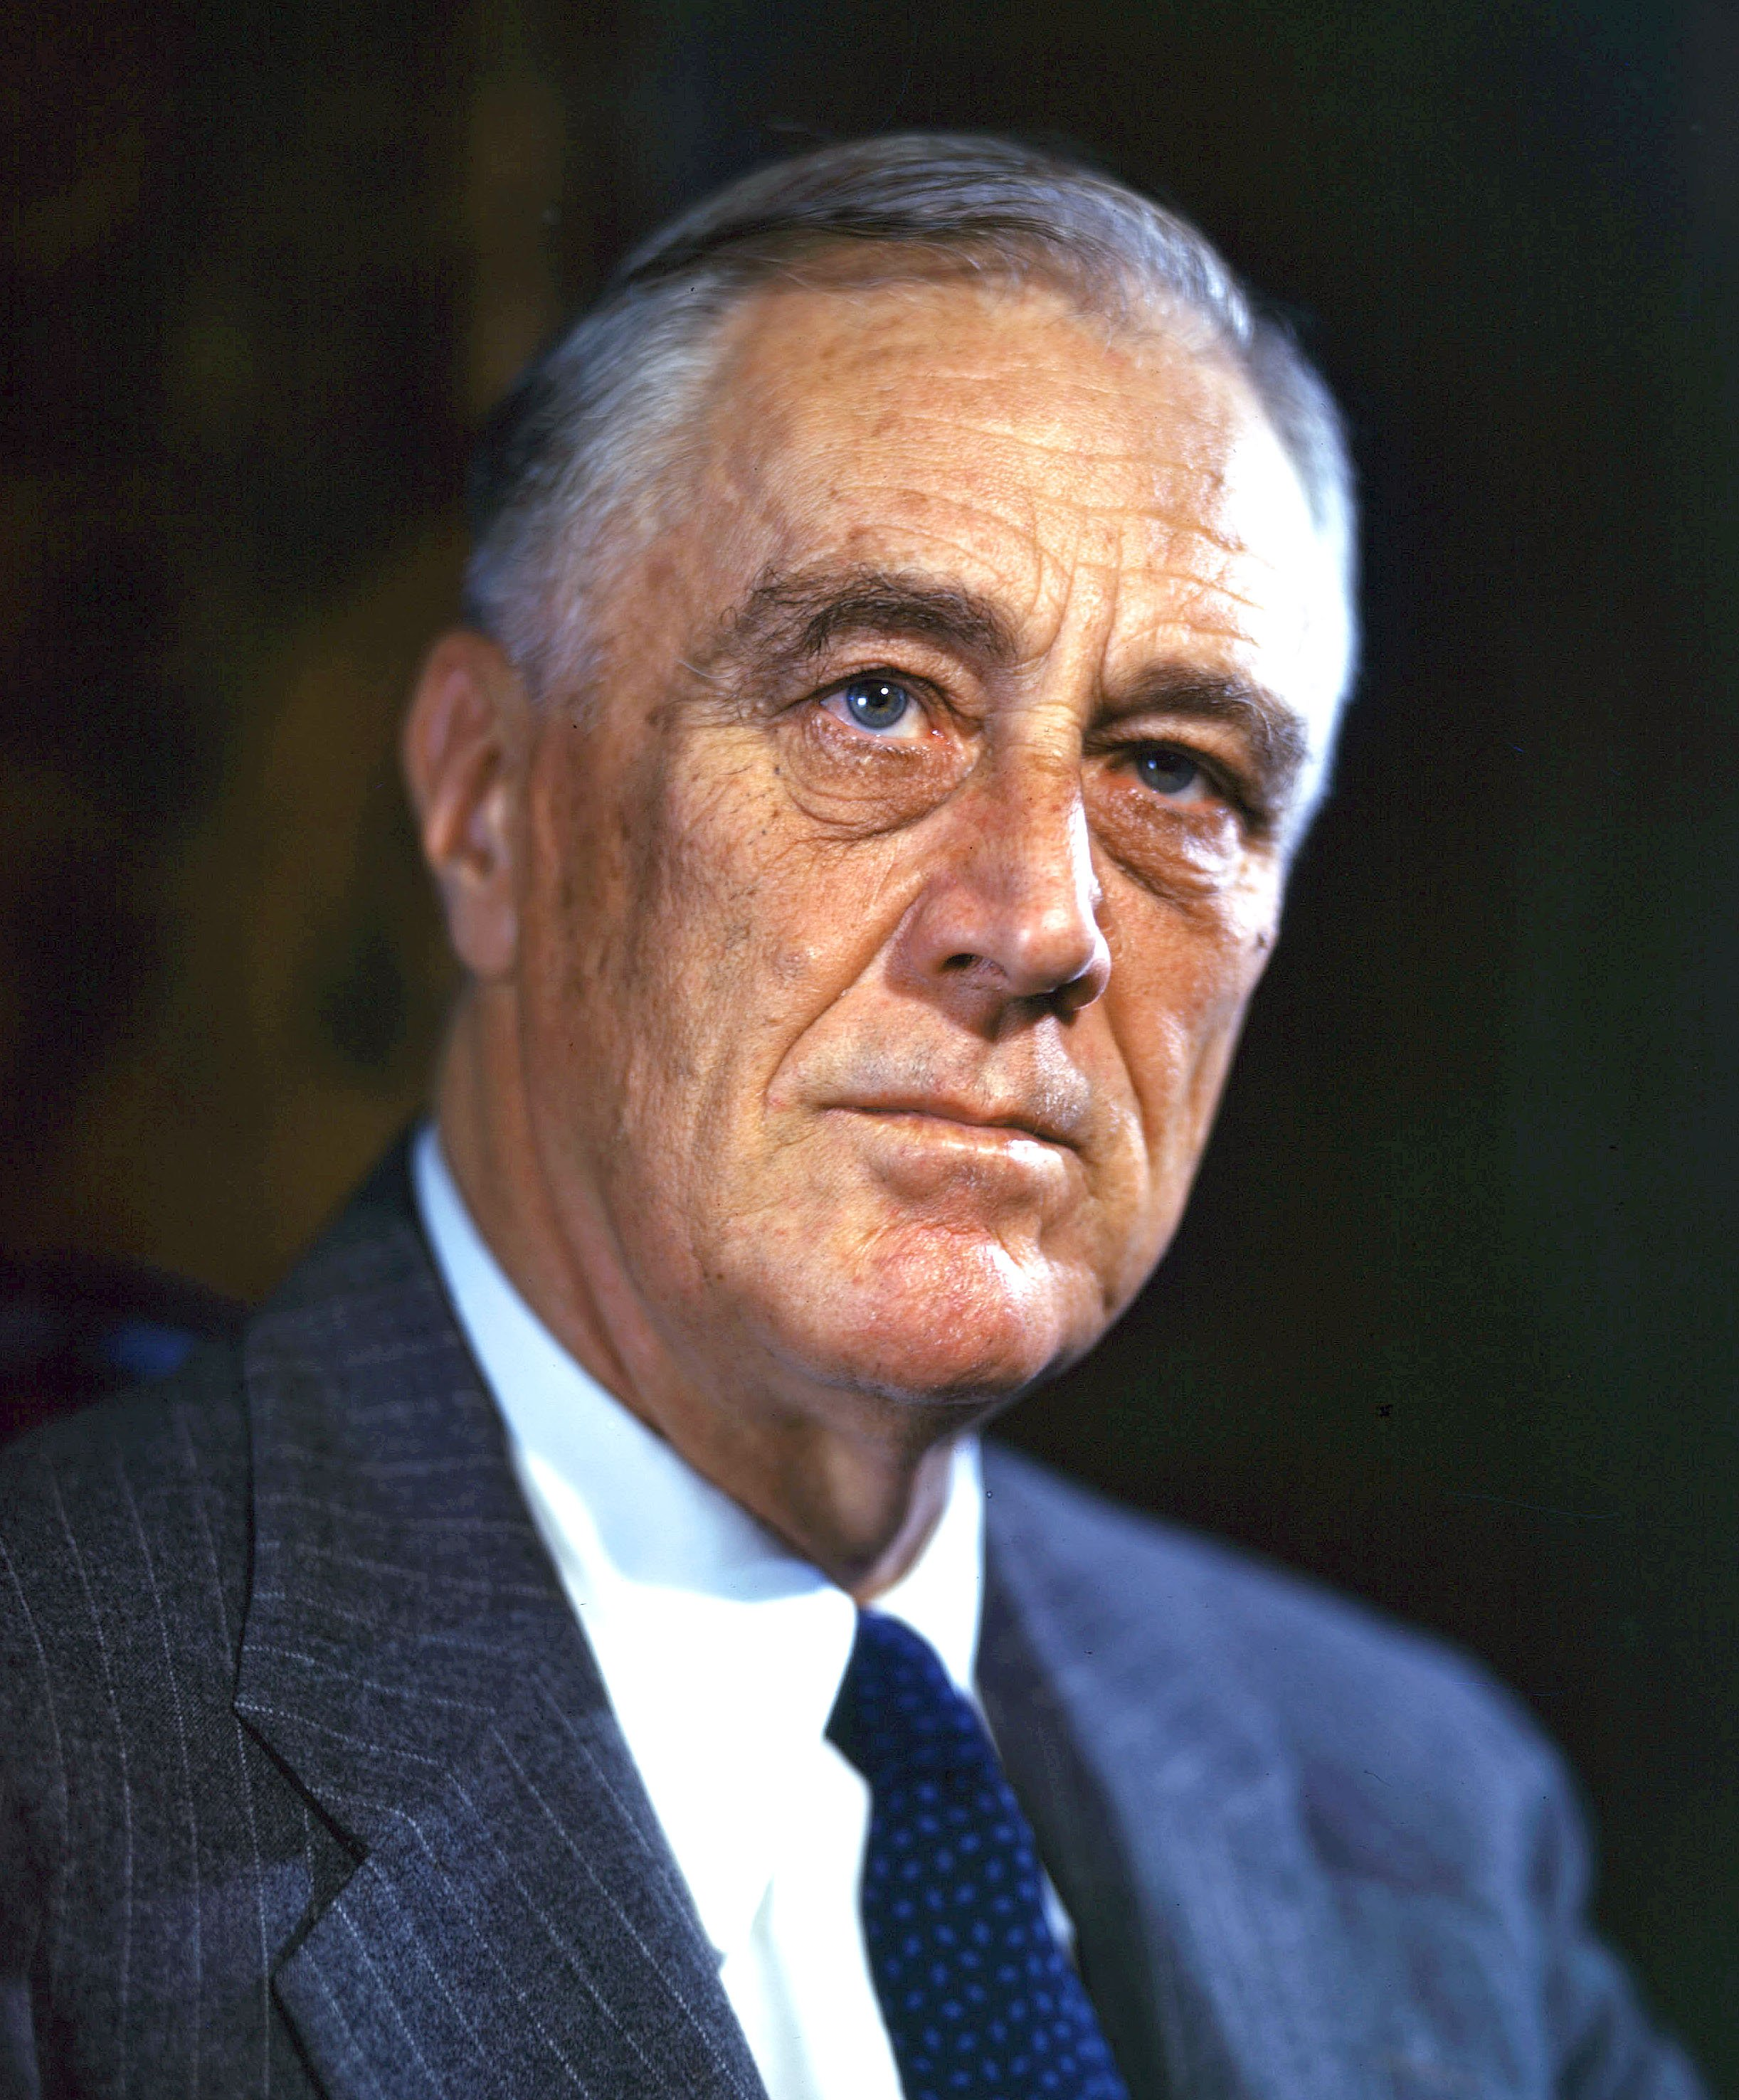 A colored portrait of Franklin Delano Roosevelt | Photo: WikiJunkie, CC BY 2.0,Wikimedia Commons